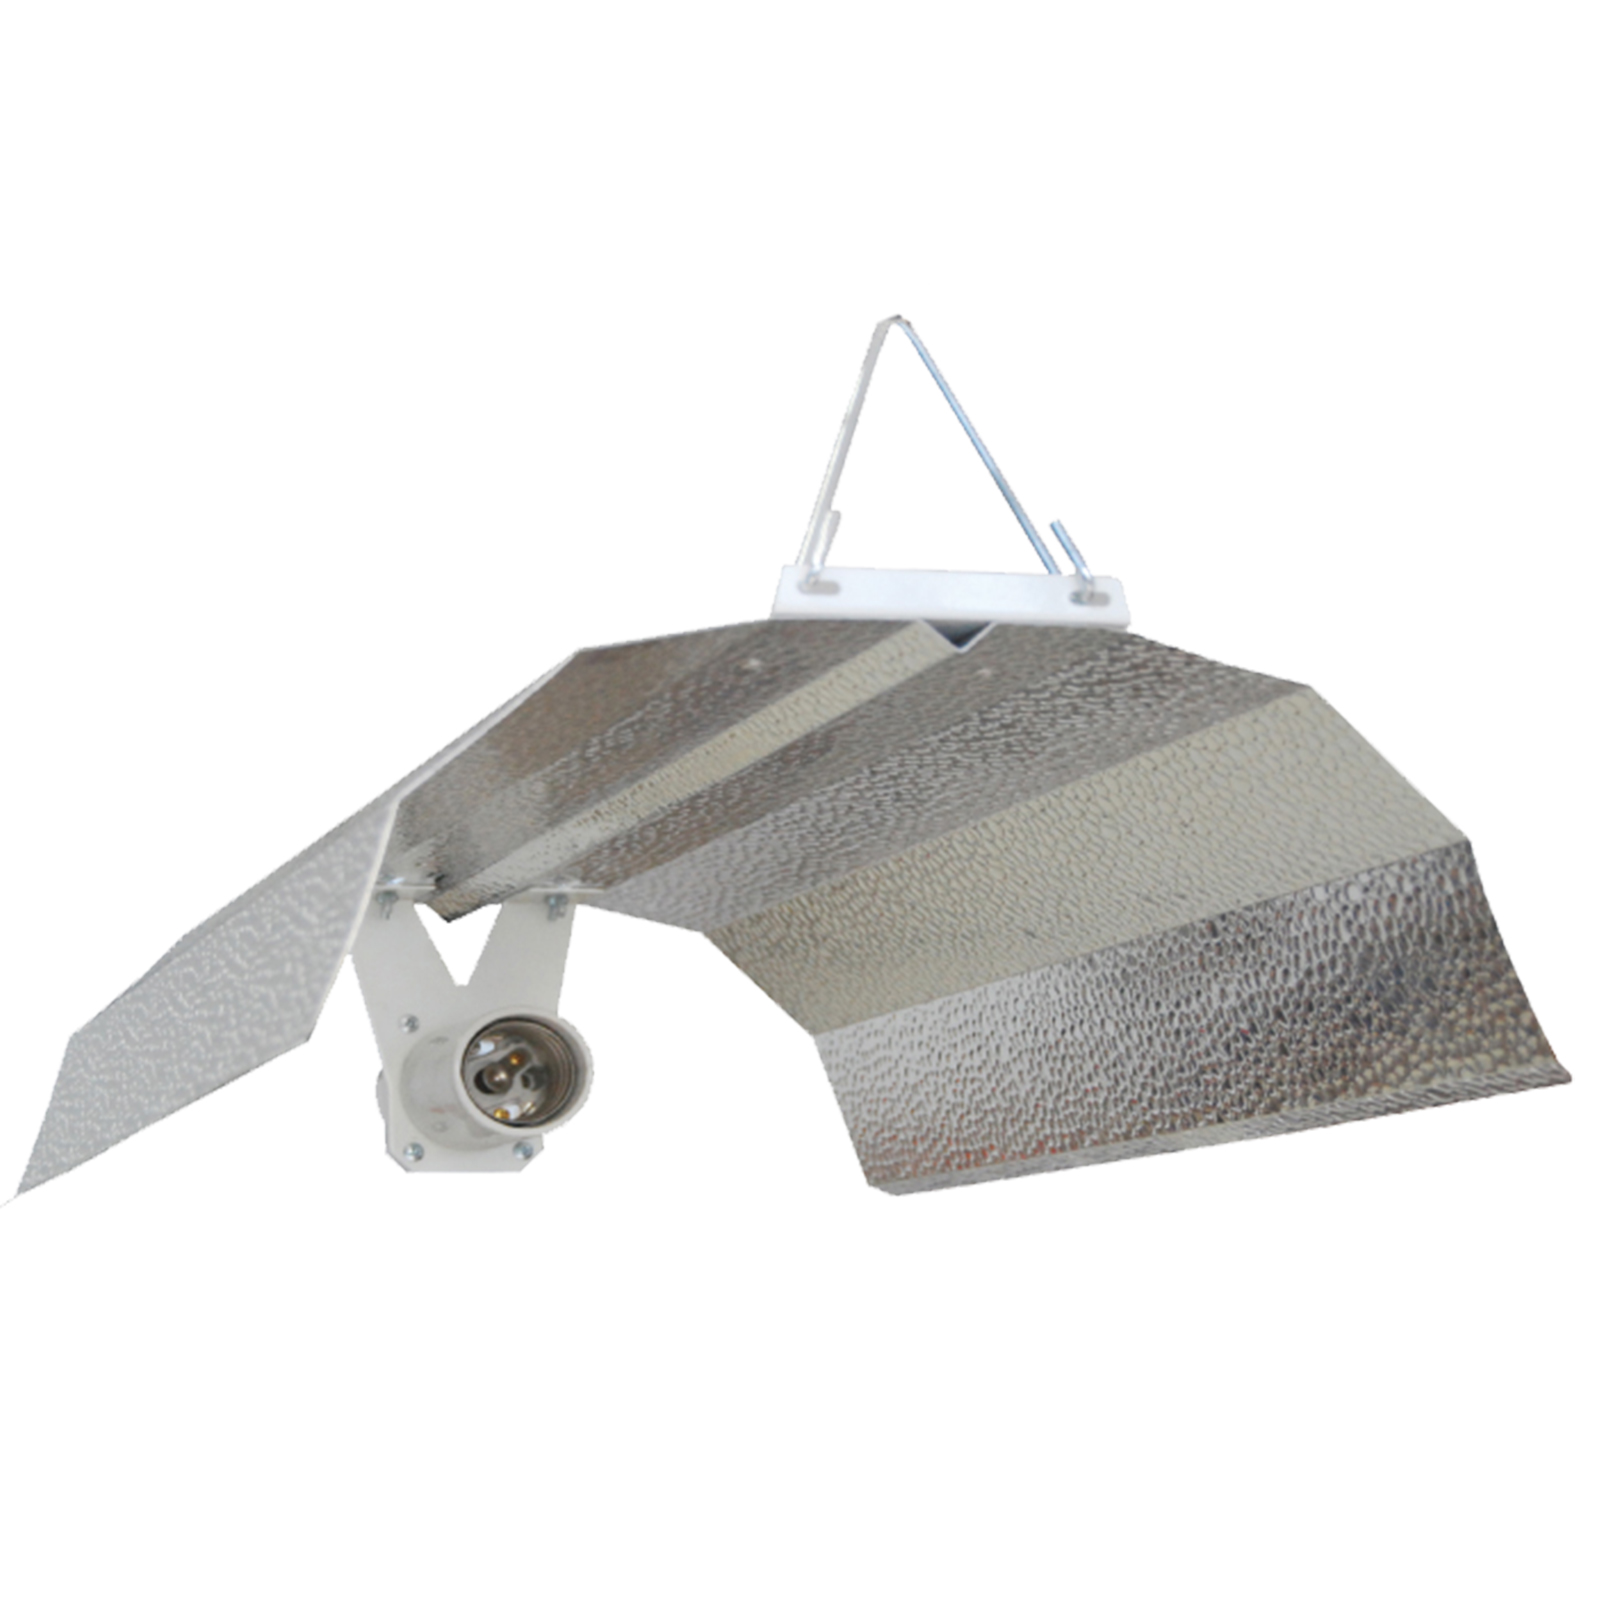 UltraGrow SE Wing Reflector